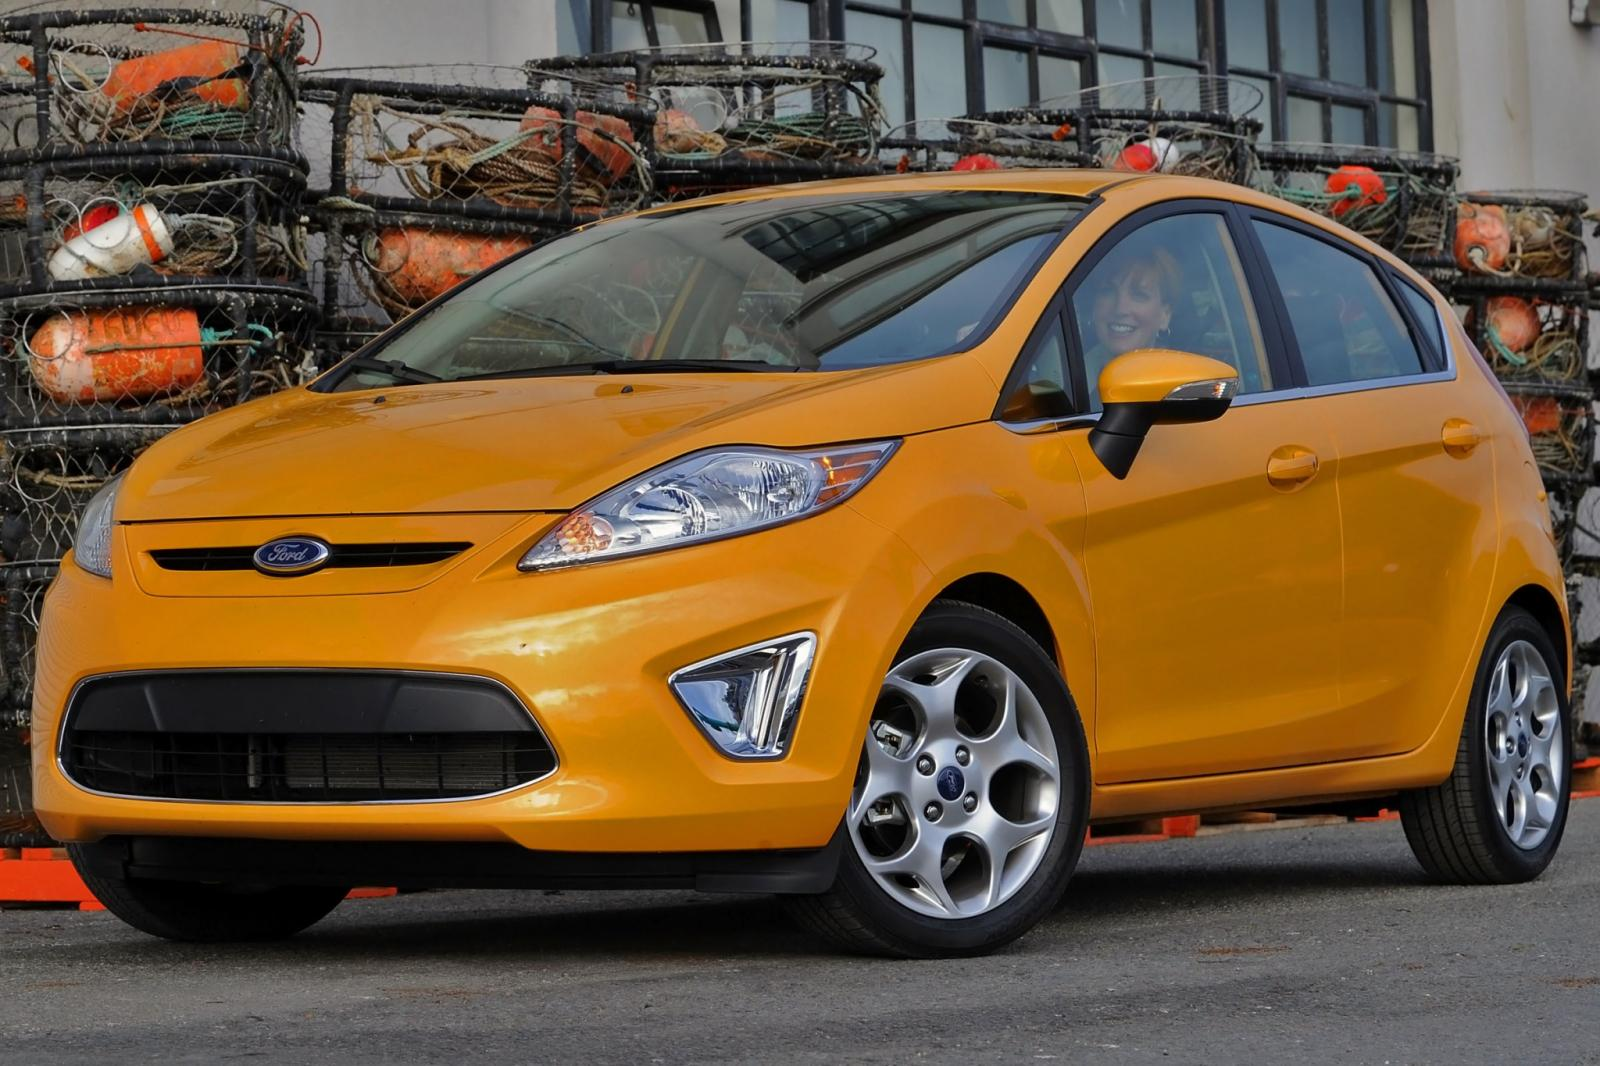 2013 ford fiesta information and photos zombiedrive. Black Bedroom Furniture Sets. Home Design Ideas